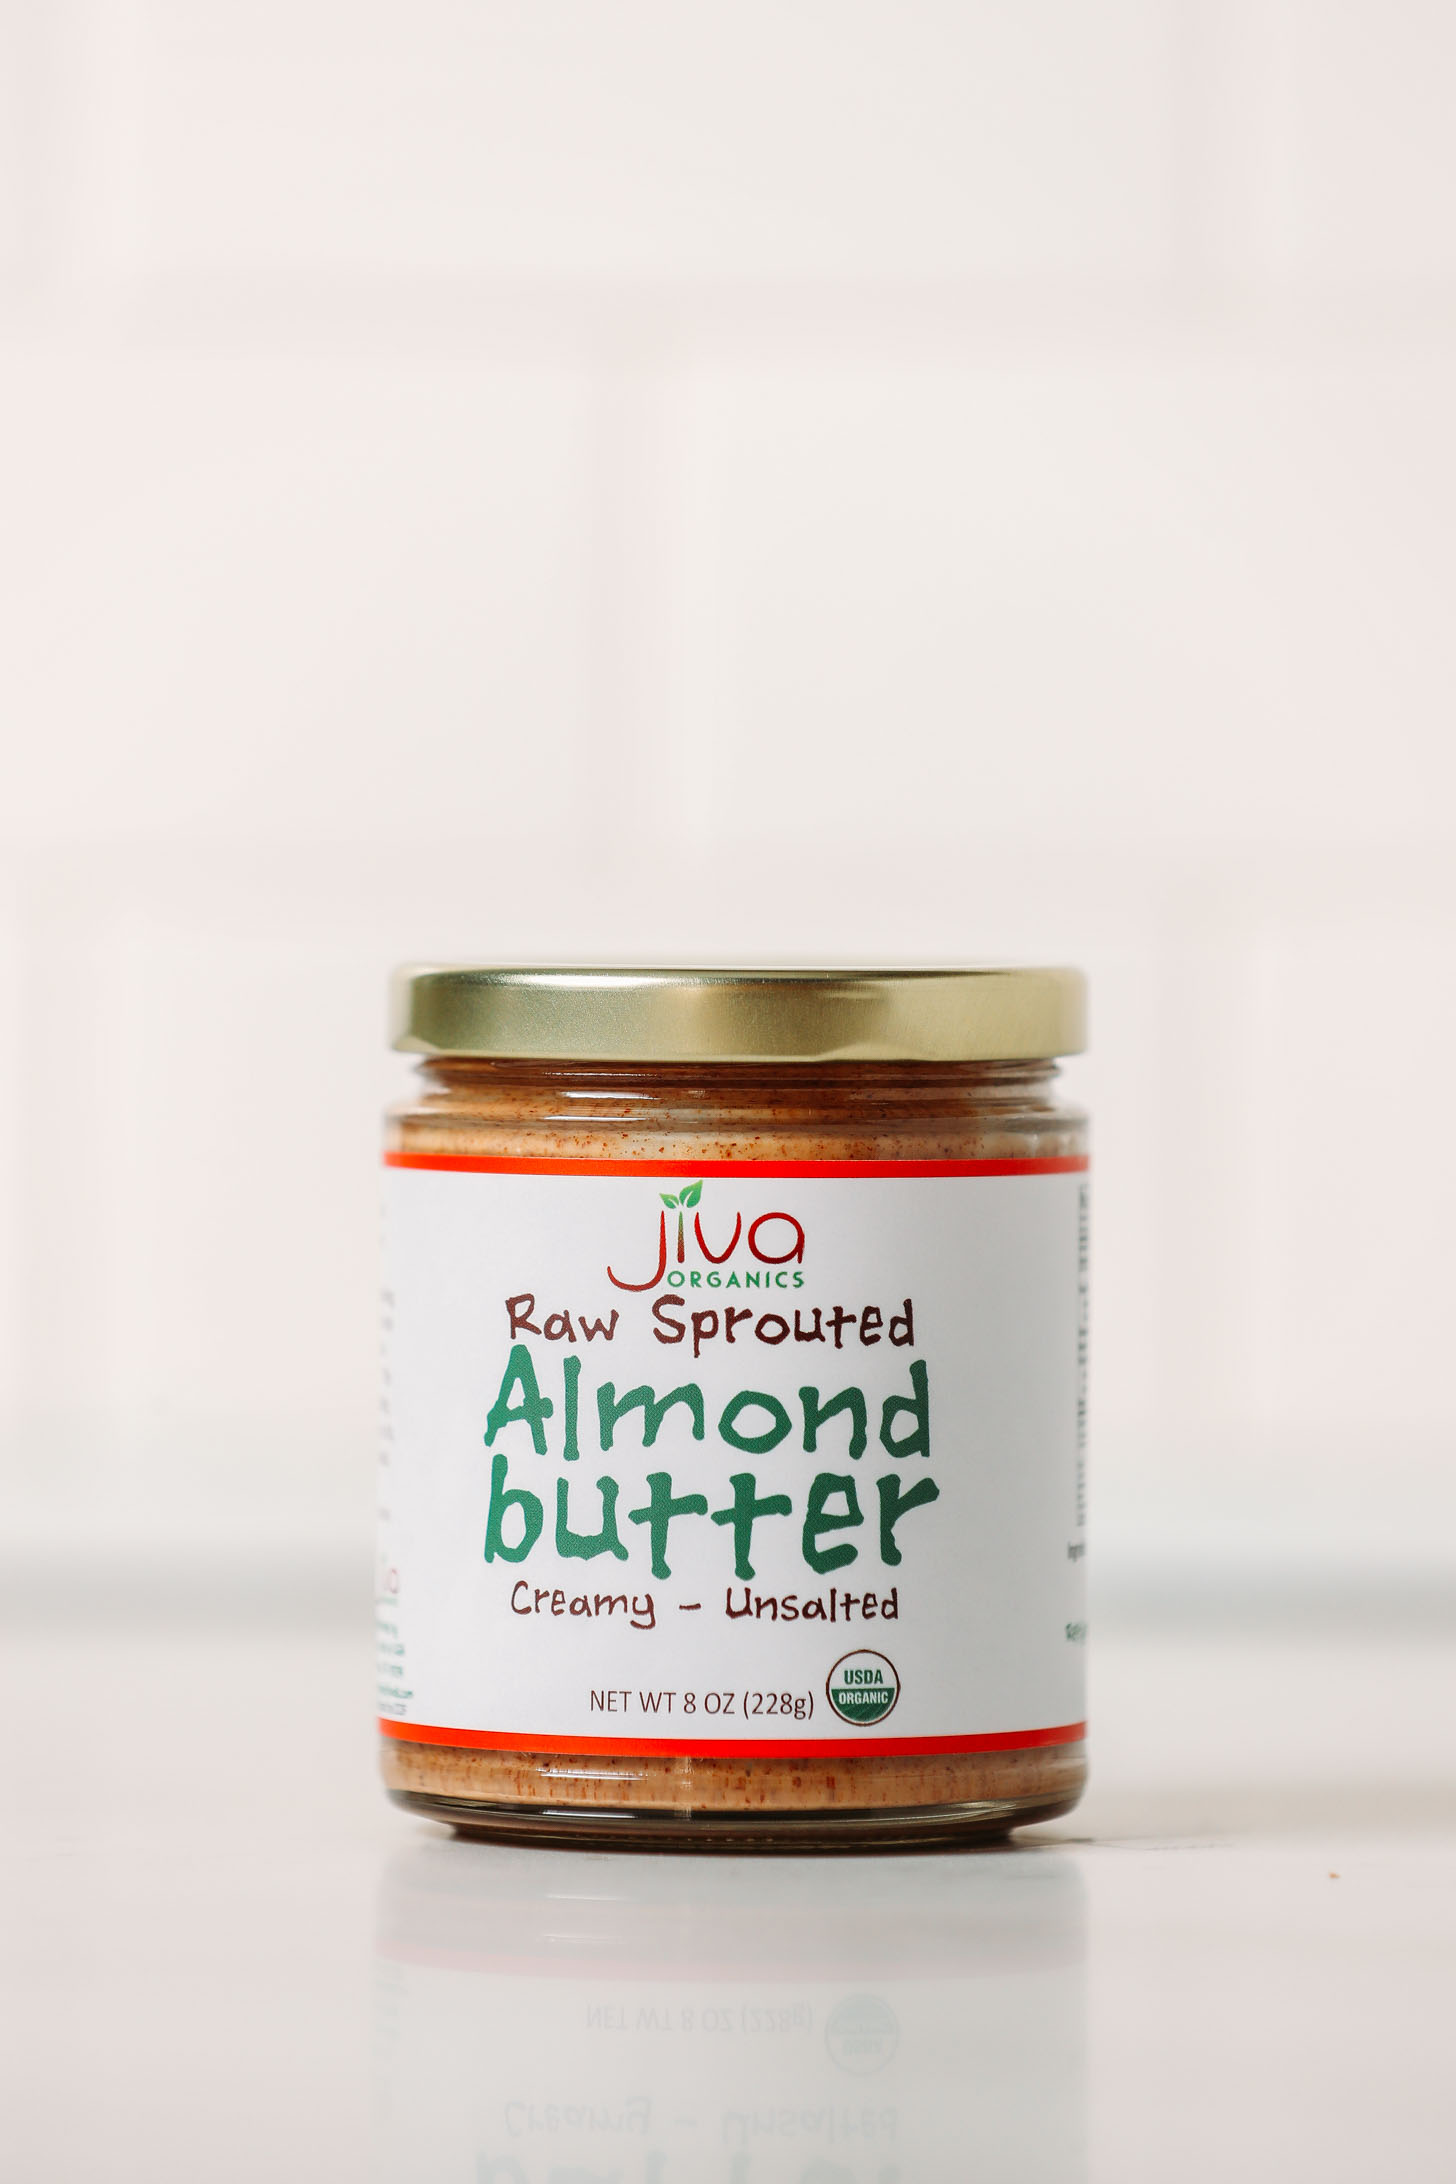 Jar of Jiva Raw Sprouted Almond Butter for our side by side review of popular almond butter brands